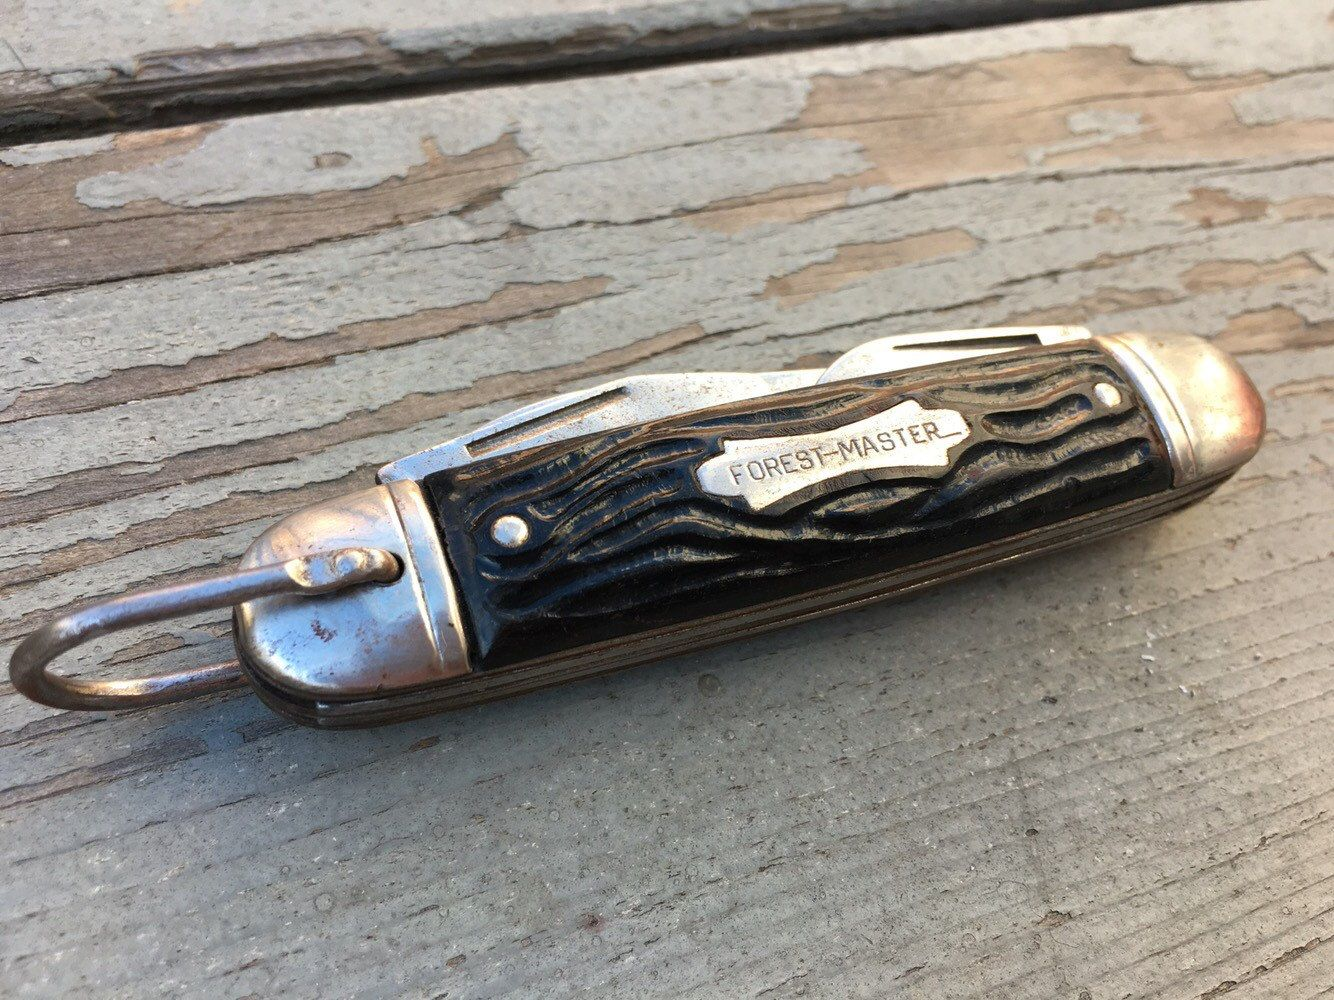 56be6aeefbb60c Vintage Forest Master Special 4 Blade Pocket knife- Colonial Campers Scout  Knife by UrbaneGoods on Etsy